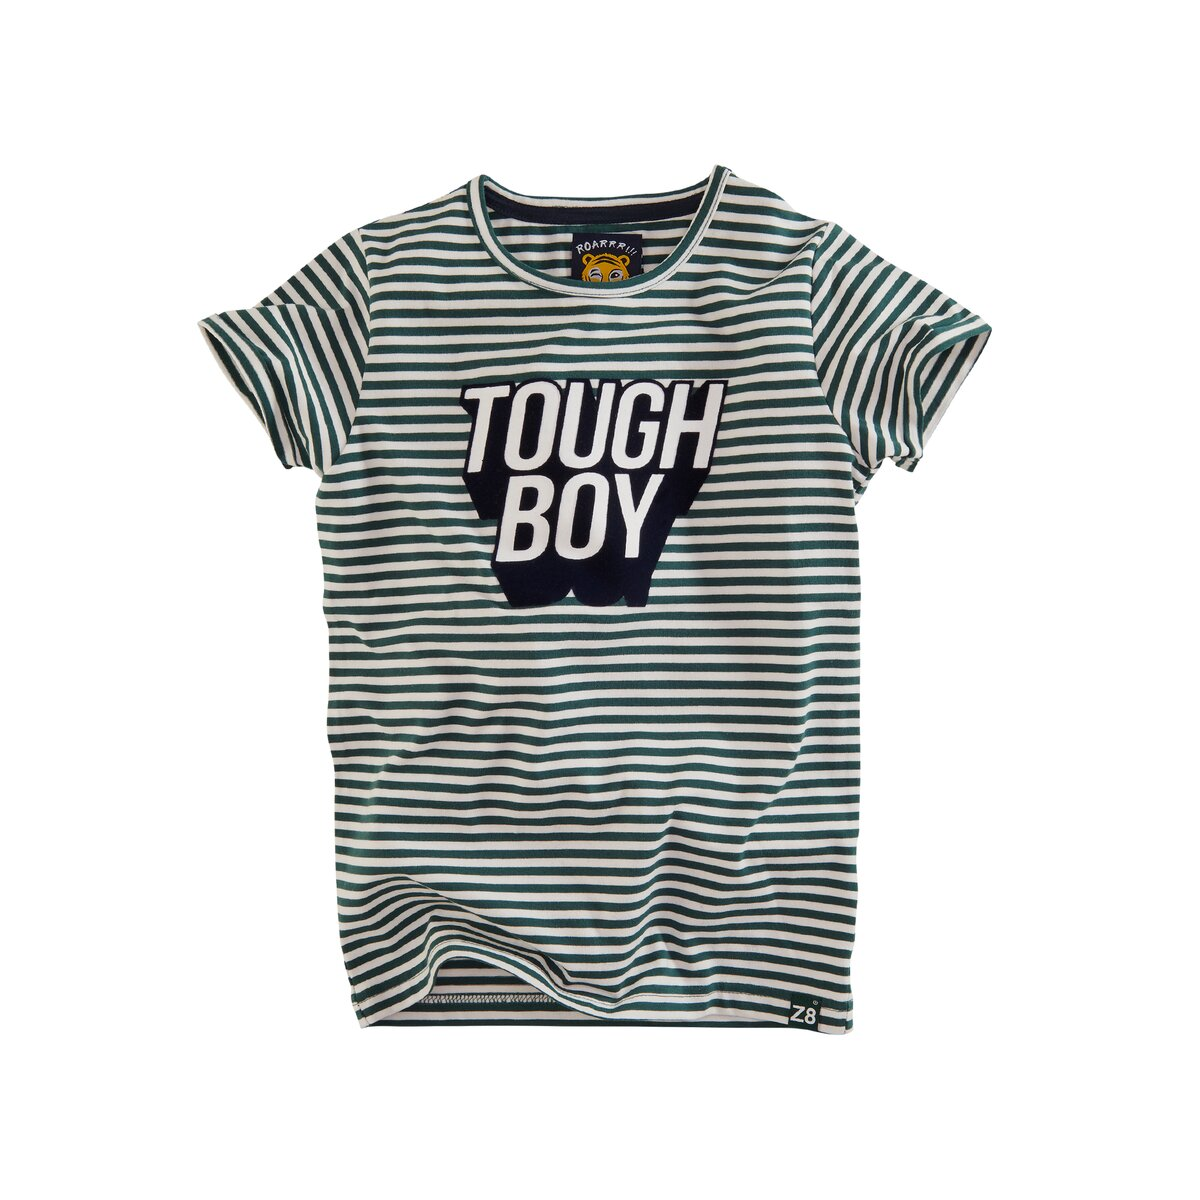 z8summer19productimageboys0000extra-davy-front-witte-achtergrond